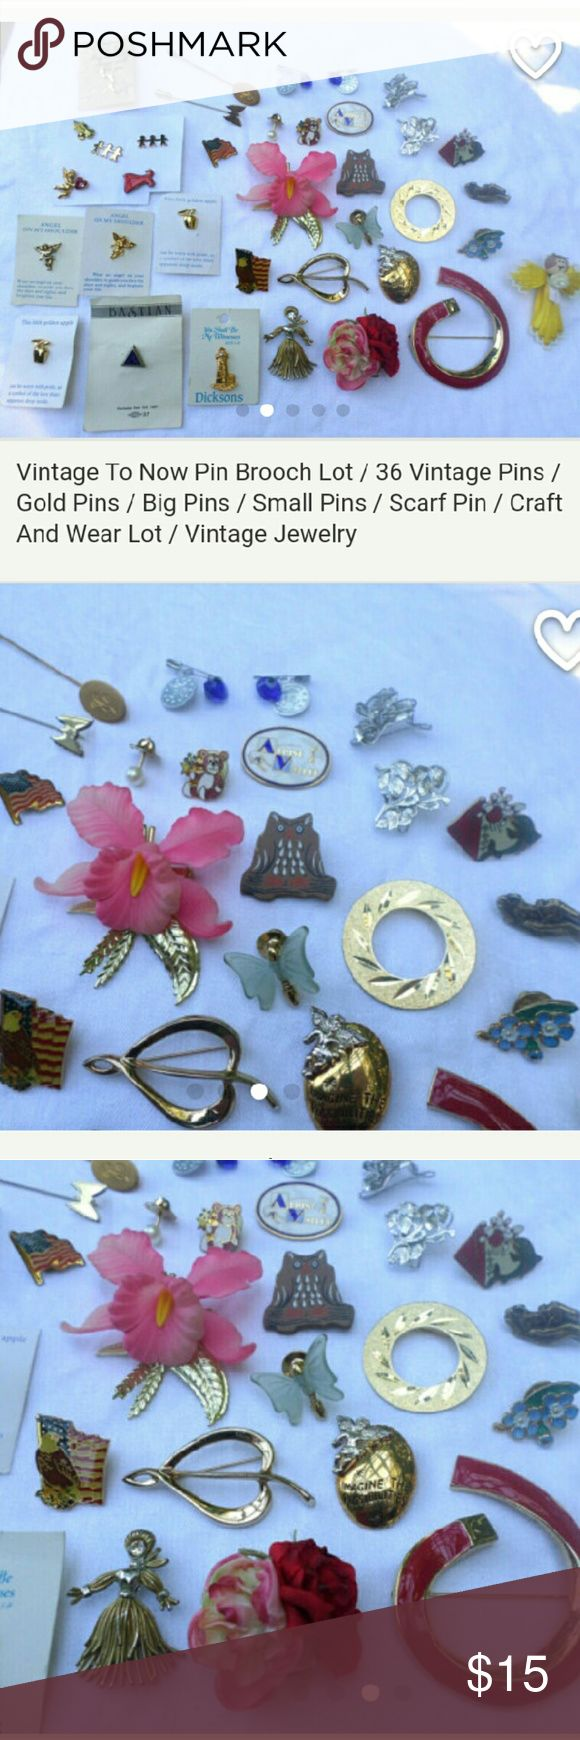 36 Vintage Brooches If you love bead lots, jewelry lots or craft lots (like me),? then you know how hard it is to find decent priced lots filled with pretty items. Until now!  You will receive 36 pins and brooches.? Some are vintage and others are modern.  Great for crafting, wearing or giving as gifts.  Lots of gold colored pins. Lots are still on original packaging paper. Some have markings.  Weighs 7 ounces. Jewelry Brooches